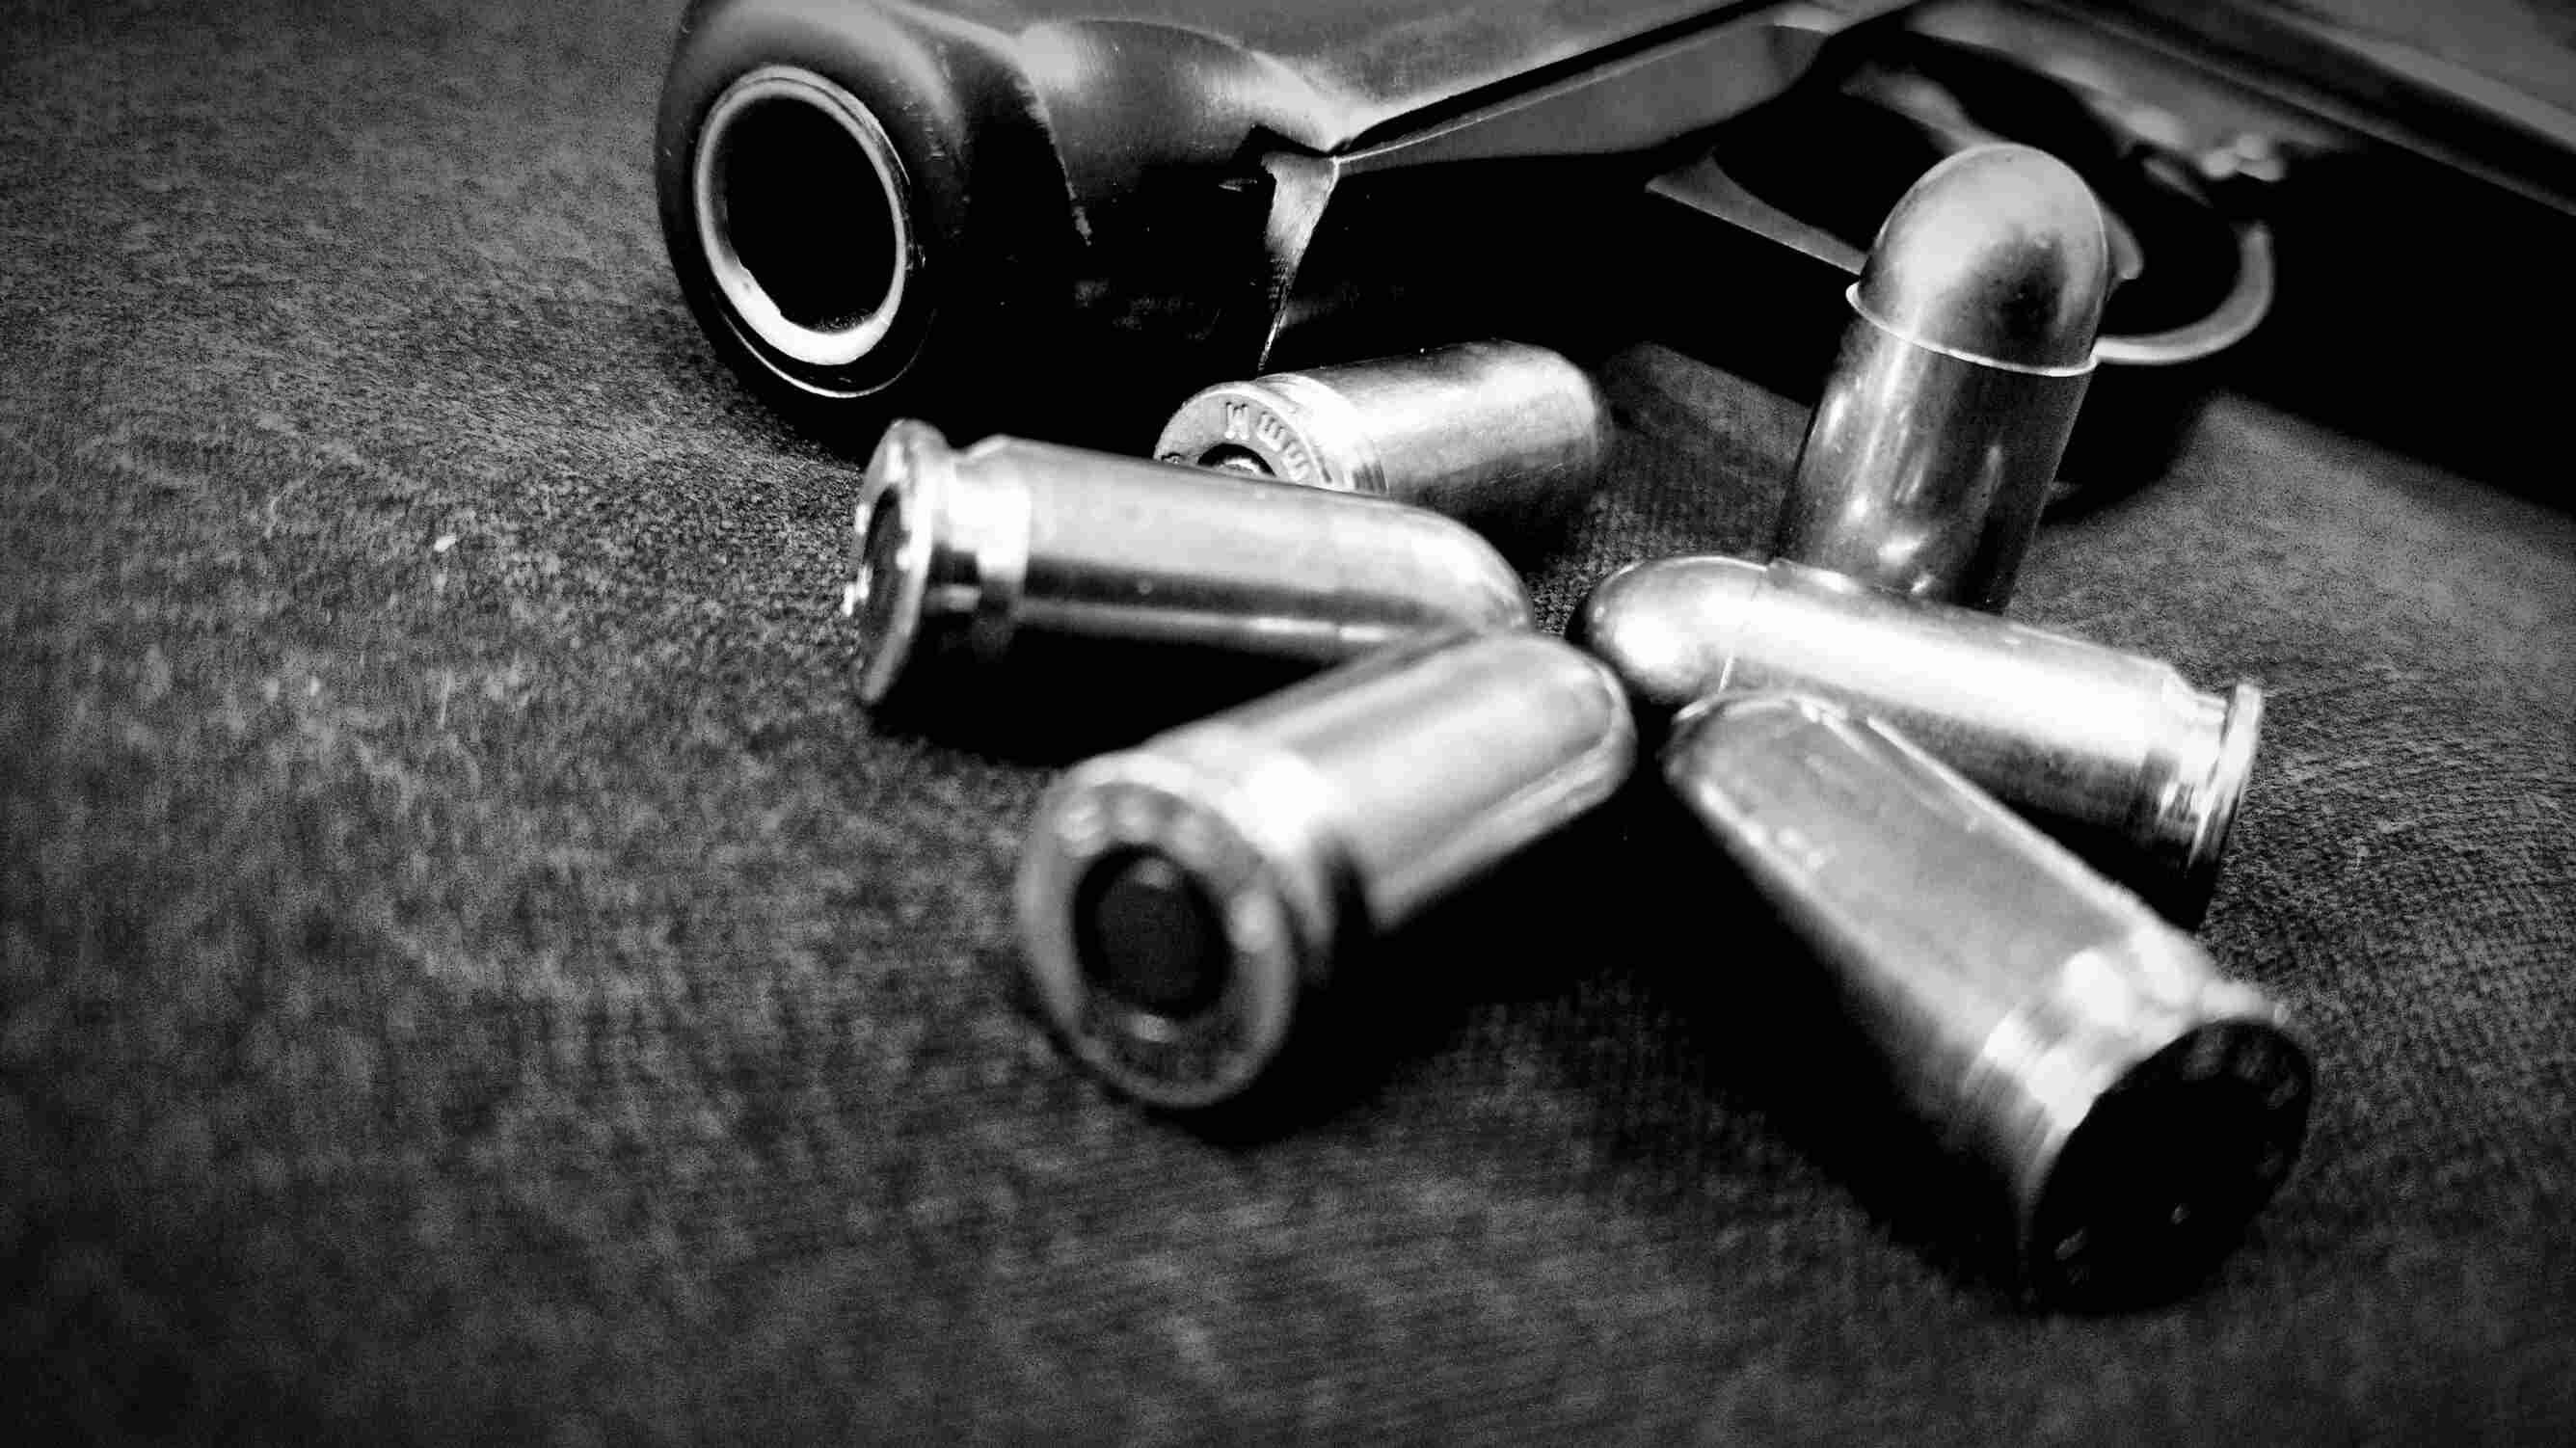 A review of over a hundred studies from 10 countries found that in many cases, gun control legislation is associated with lower rates of gun-related crime, suicide, and accidental shootings.